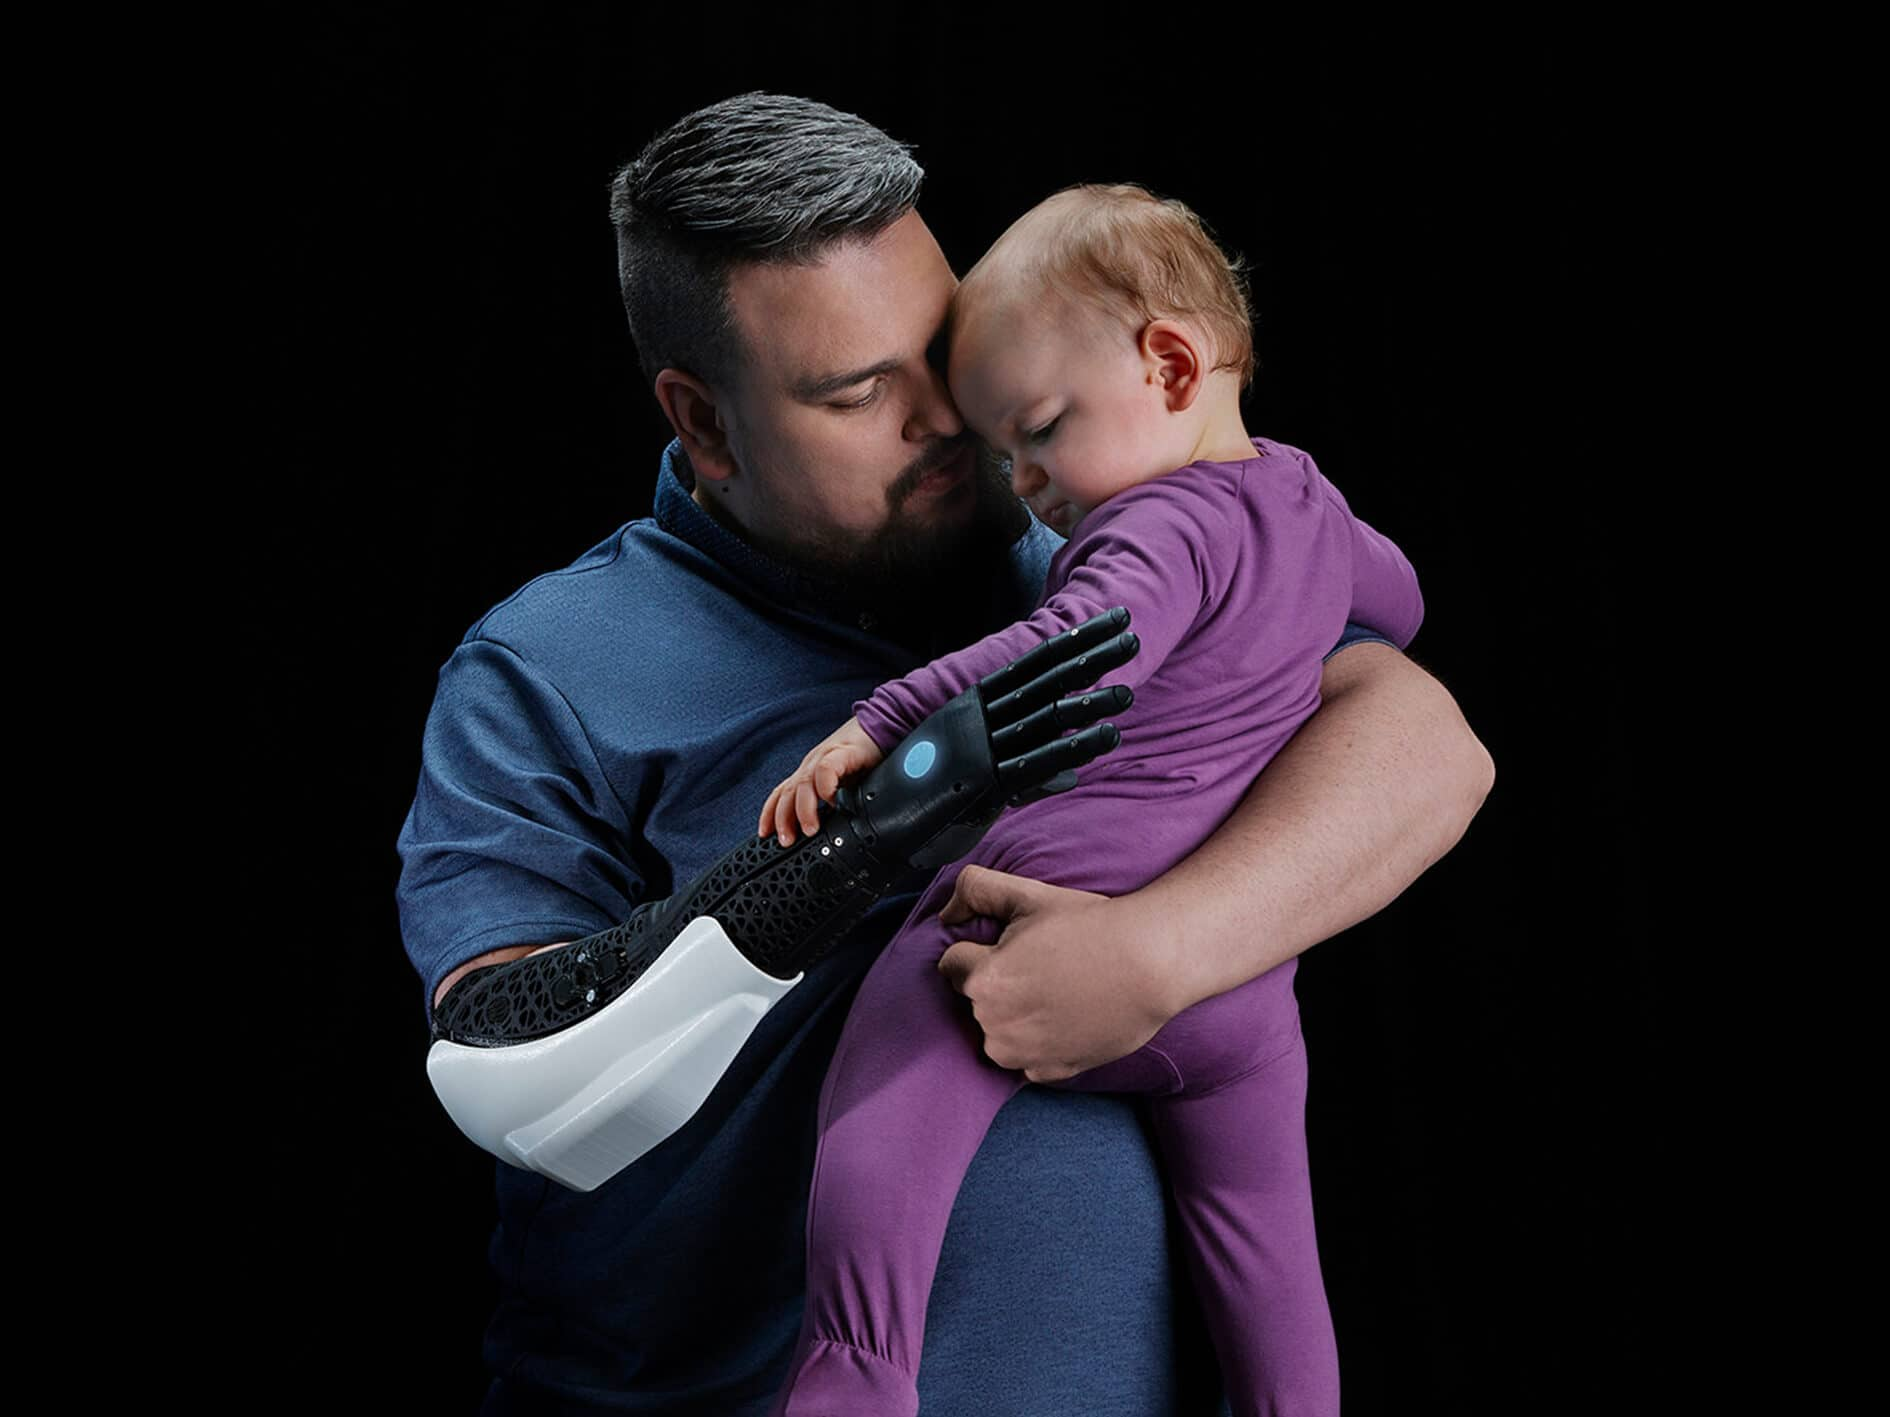 Open Bionics Empowers Amputee holding his baby with The Hero Arm Prosthetic